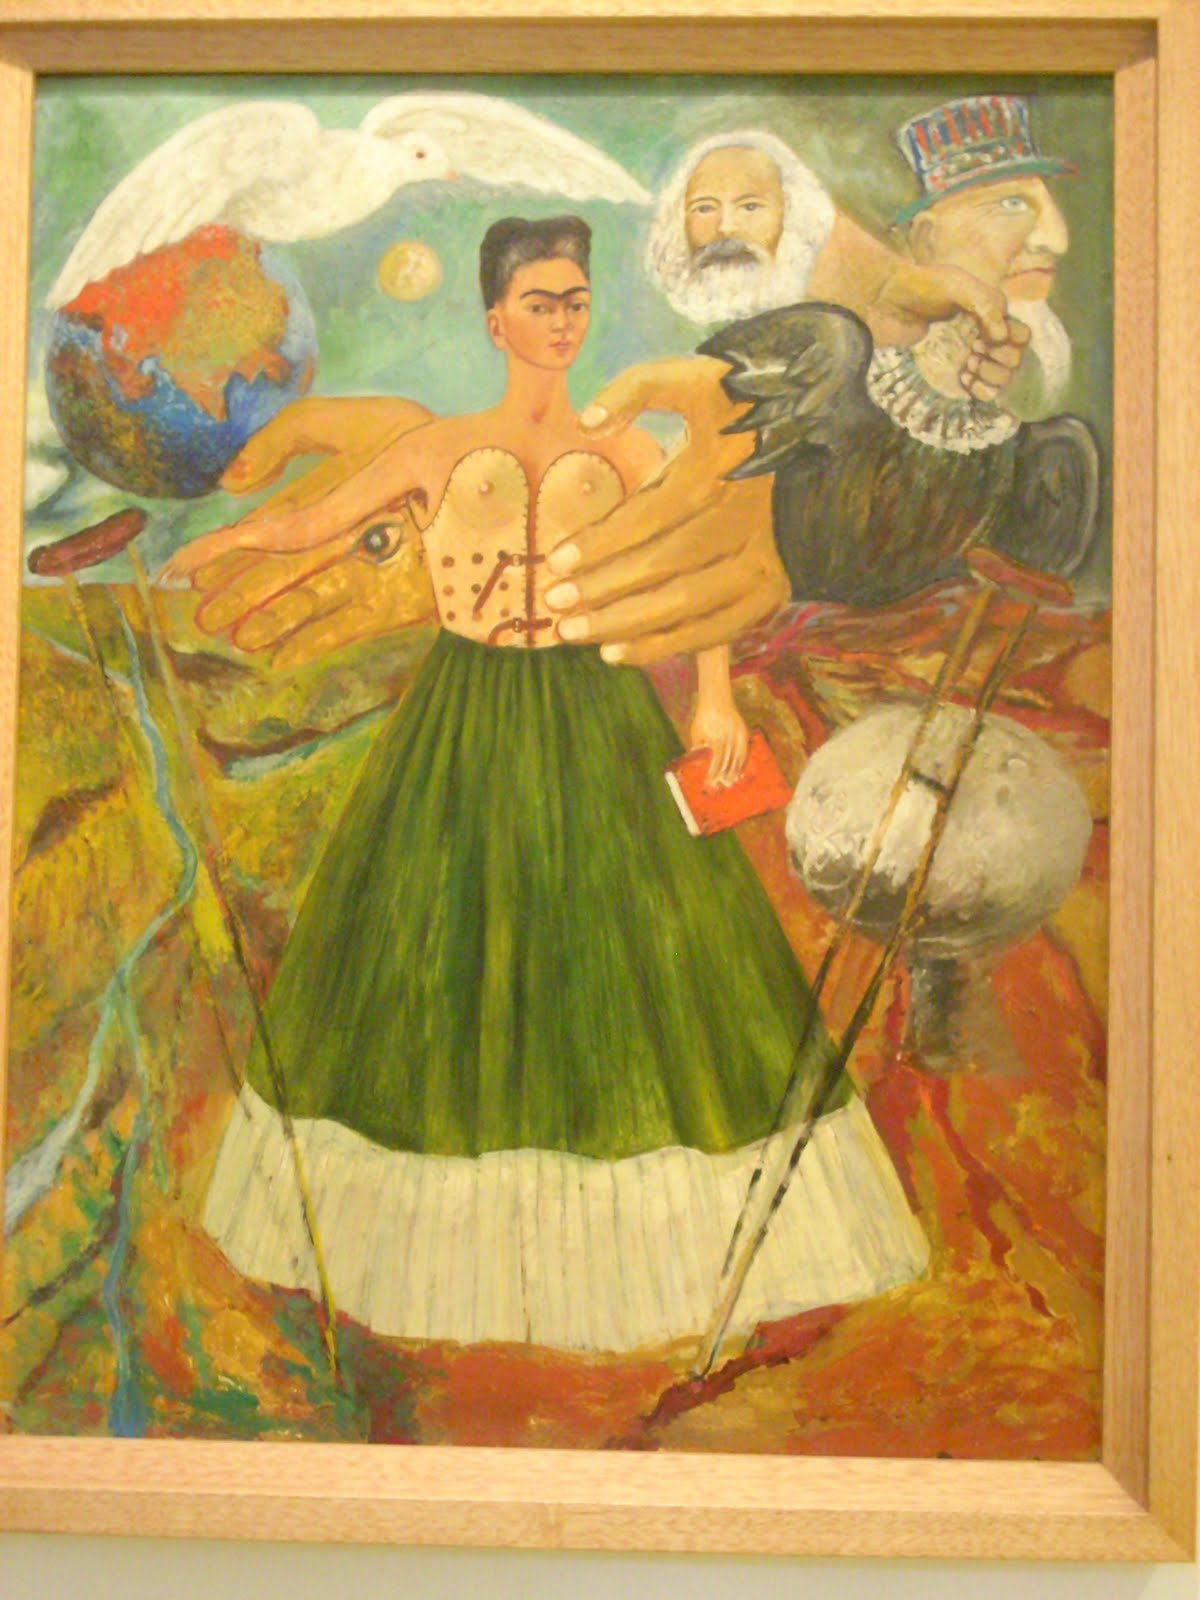 Rebeca mexico 2011 frida kahlo y diego rivera for Diego rivera lenin mural